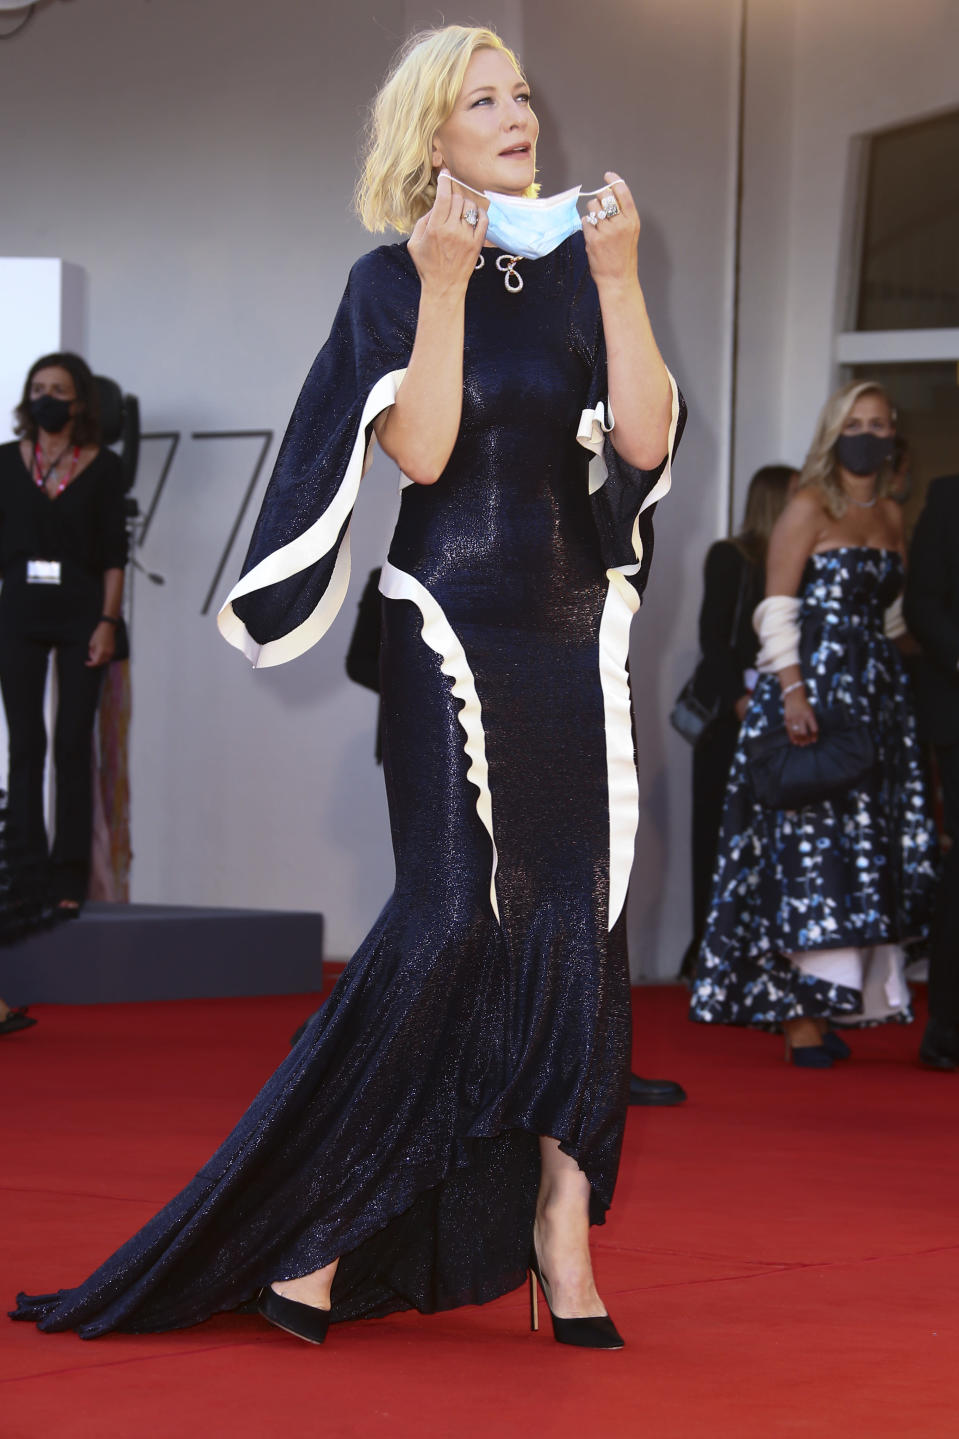 Jury president Cate Blanchett poses for photographers upon arrival at the opening ceremony of the 77th edition of the Venice Film Festival in Venice, Italy, Wednesday, Sept. 2, 2020. (Photo by Joel C Ryan/Invision/AP)